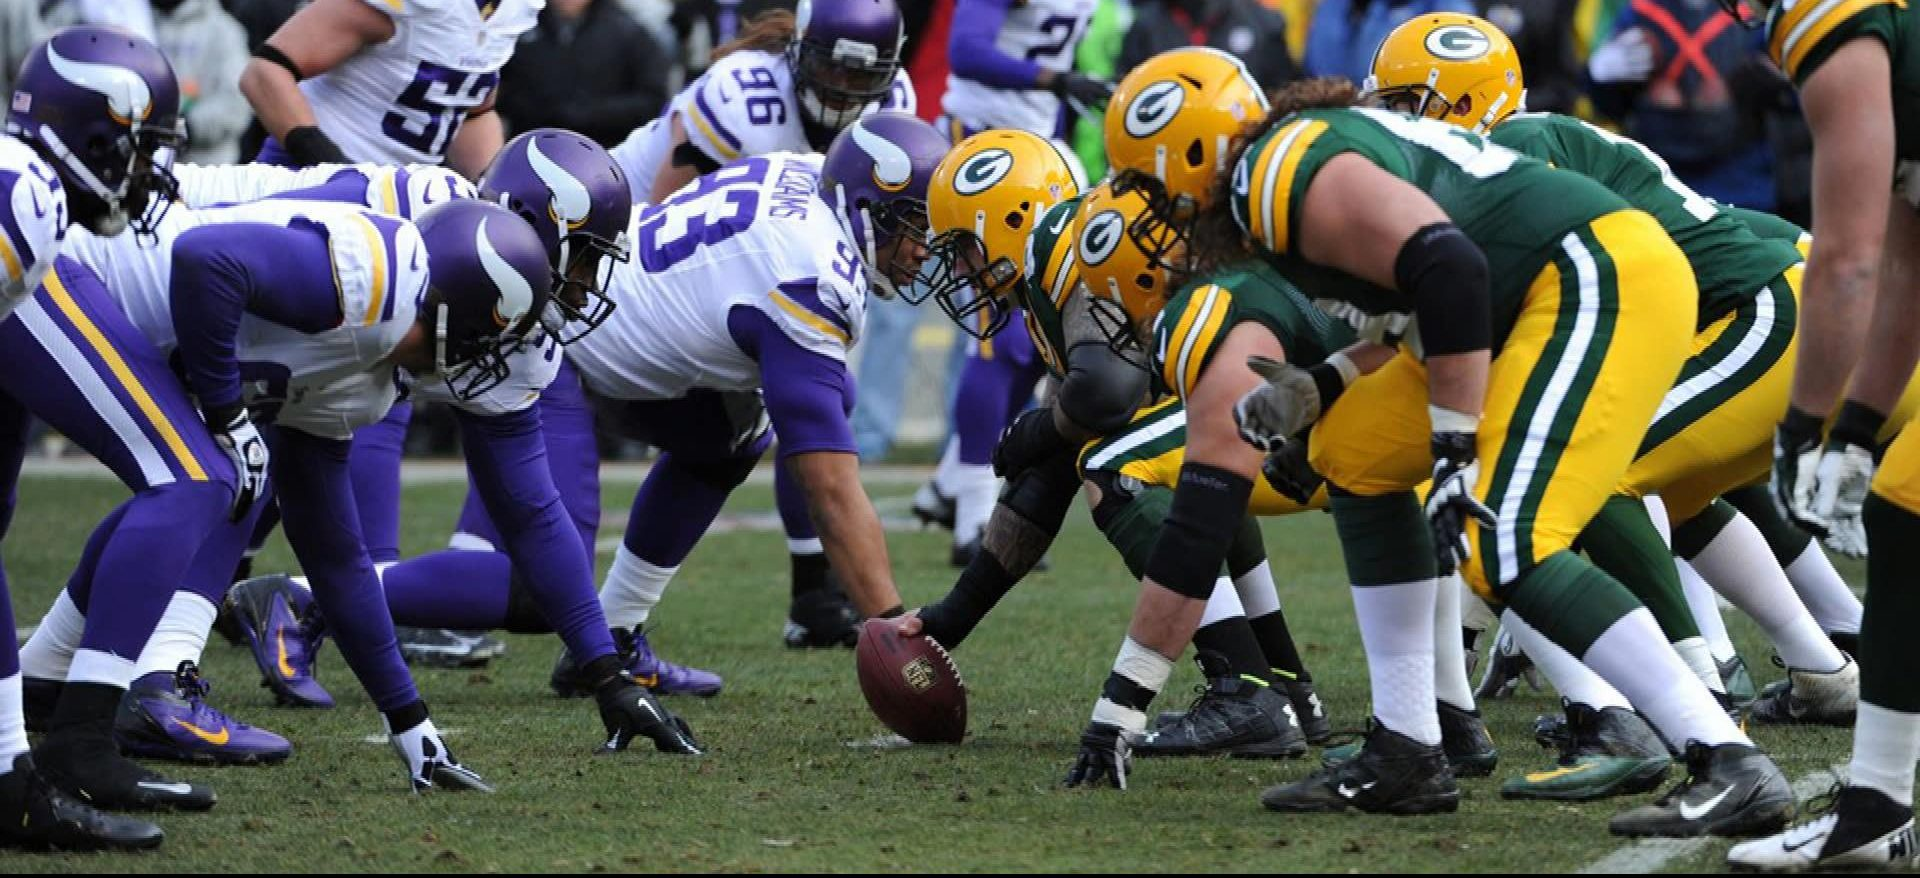 Packers Vs. Vikings - Sunday Night Football Betting Odds | Predictions